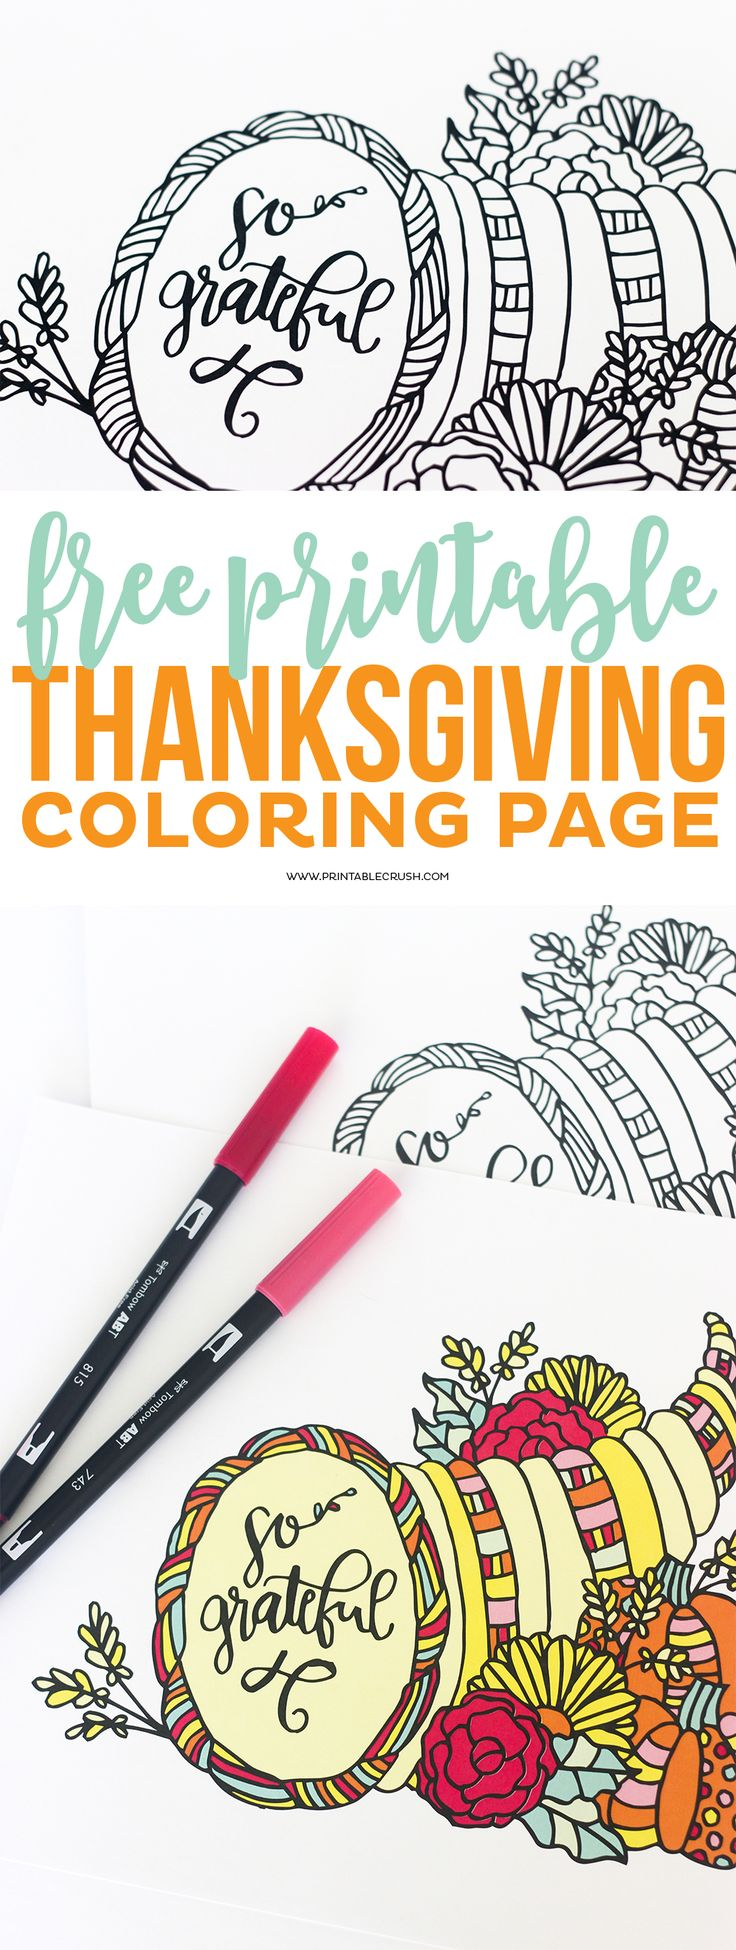 Free coloring pages for the elderly - Download This Pretty Thanksgiving Coloring Page For Your Dinner Guests It S A Great Coloring Page